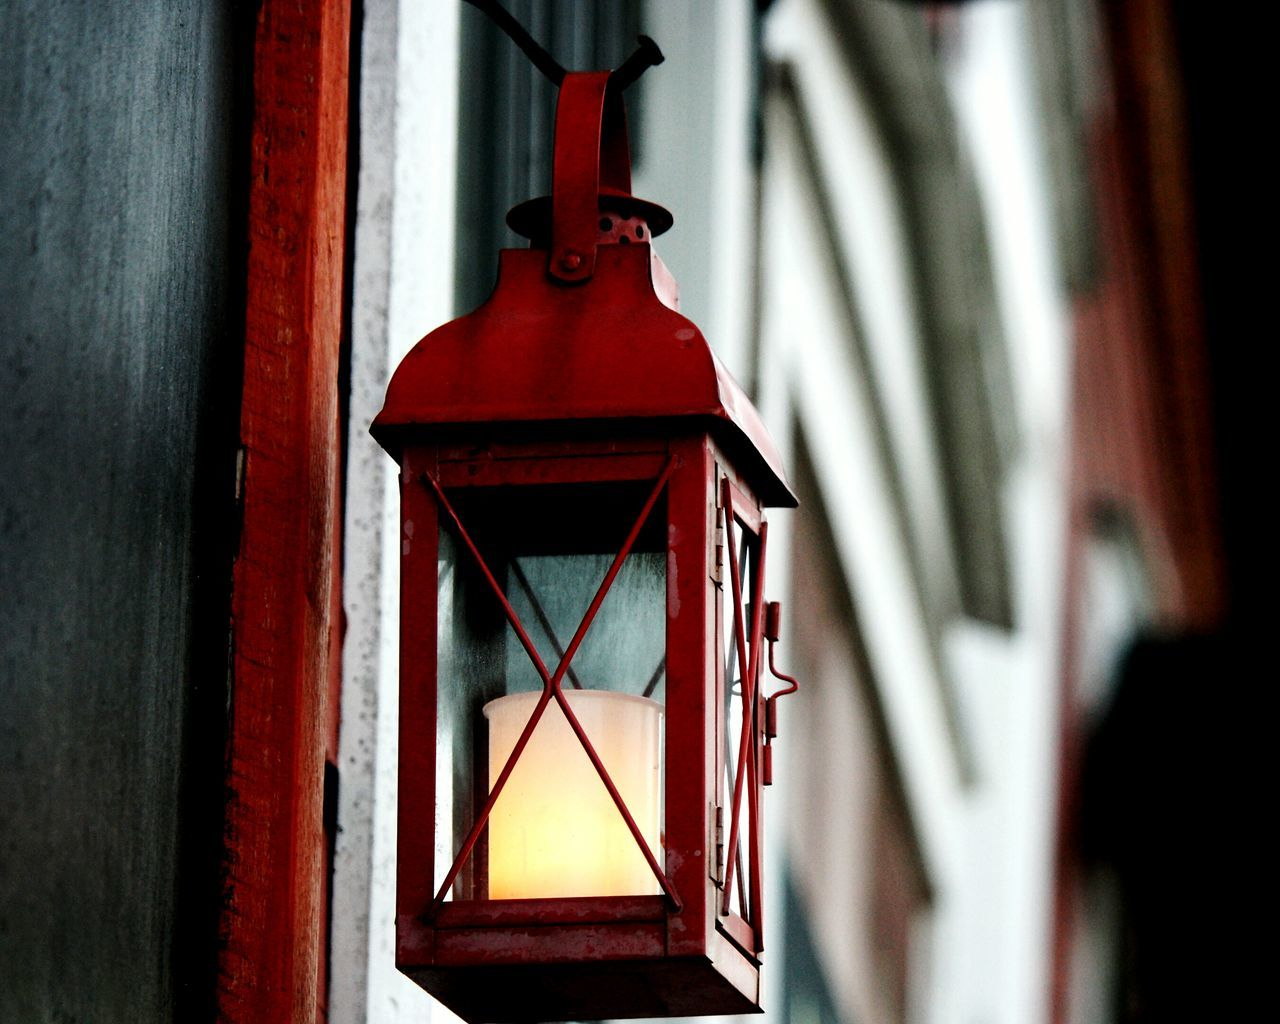 Low Angle View Of Red Lit Lantern